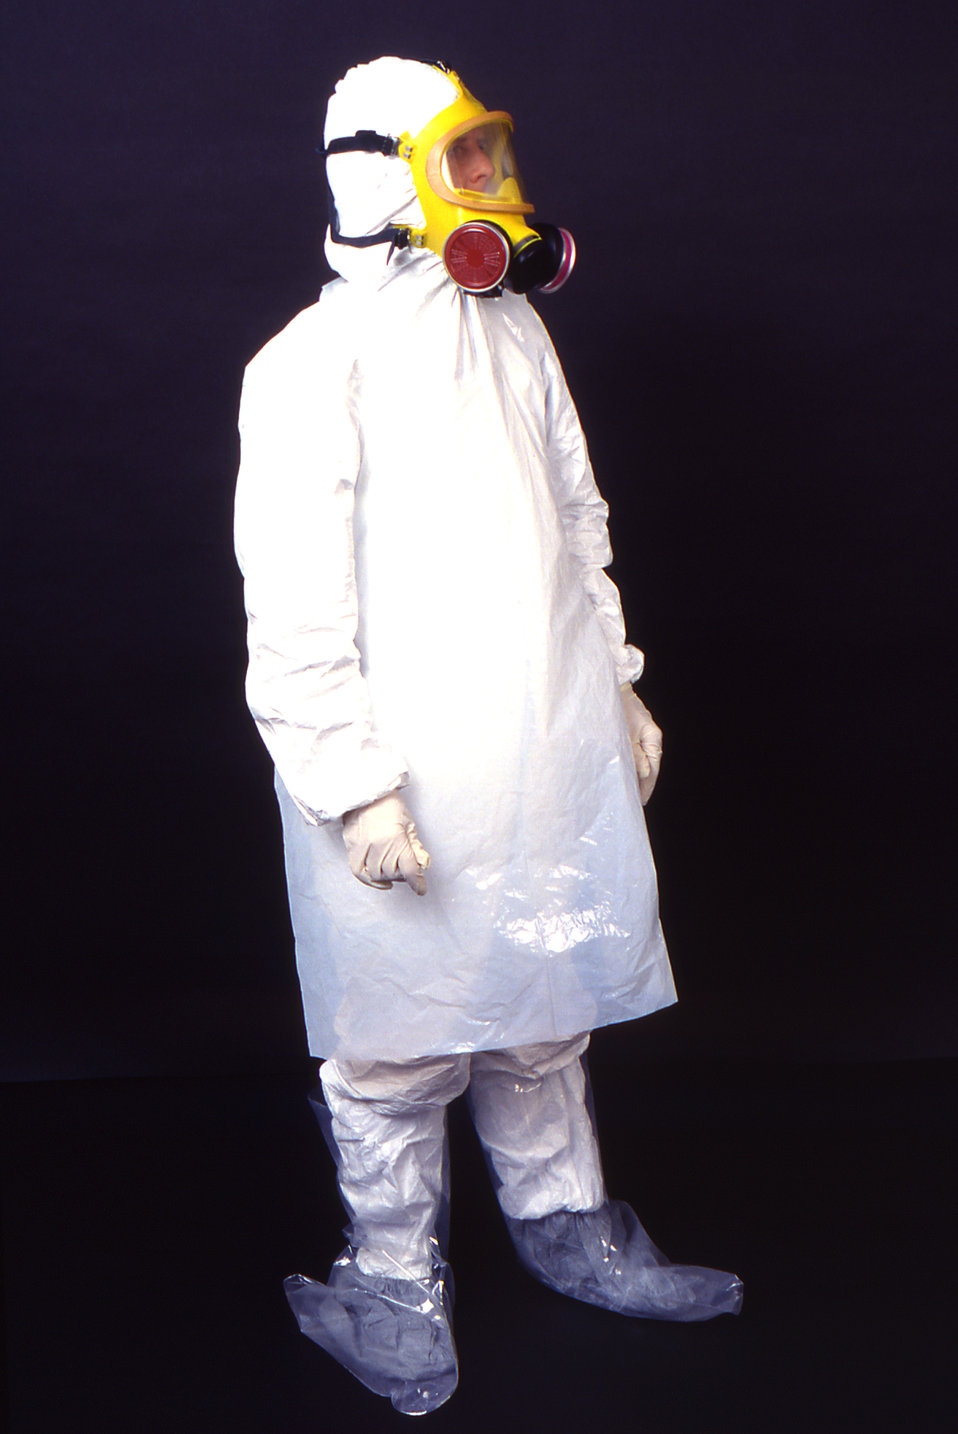 This 1995 image depicts a right anterior-oblique view of a laboratory technician wearing garments usually worn by field techs including a di